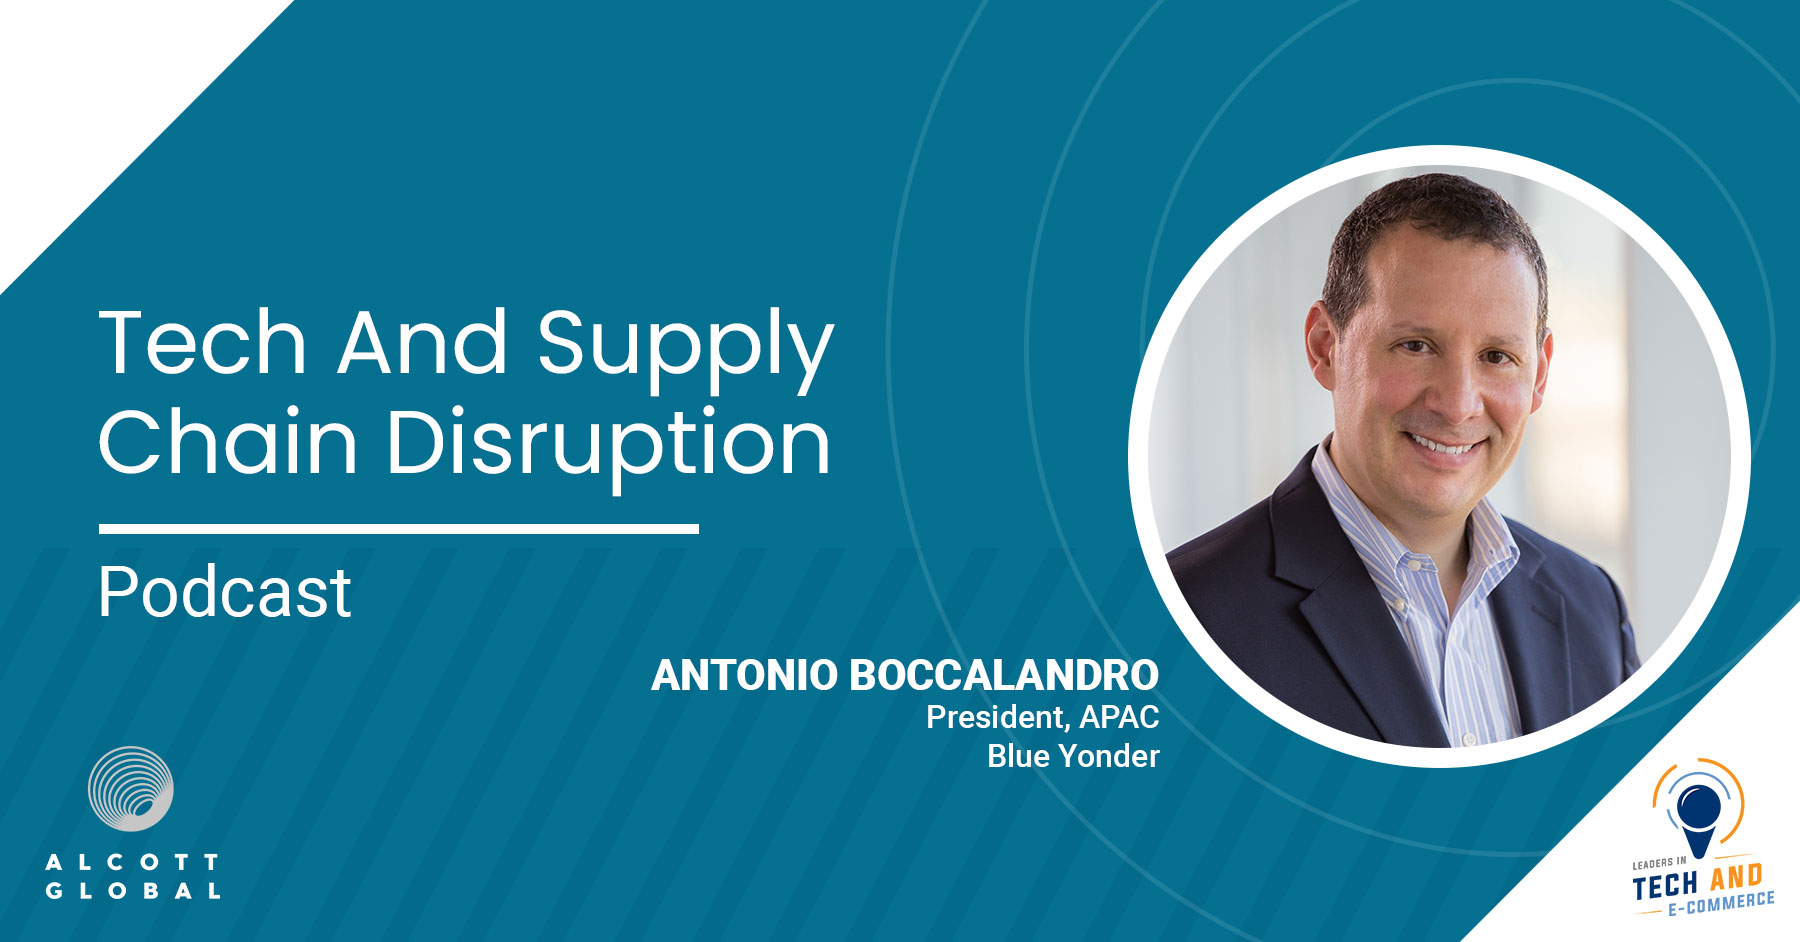 Tech and Supply Chain Disruption with Antonio Boccalandro President, APAC at Blue Yonder Featured Image